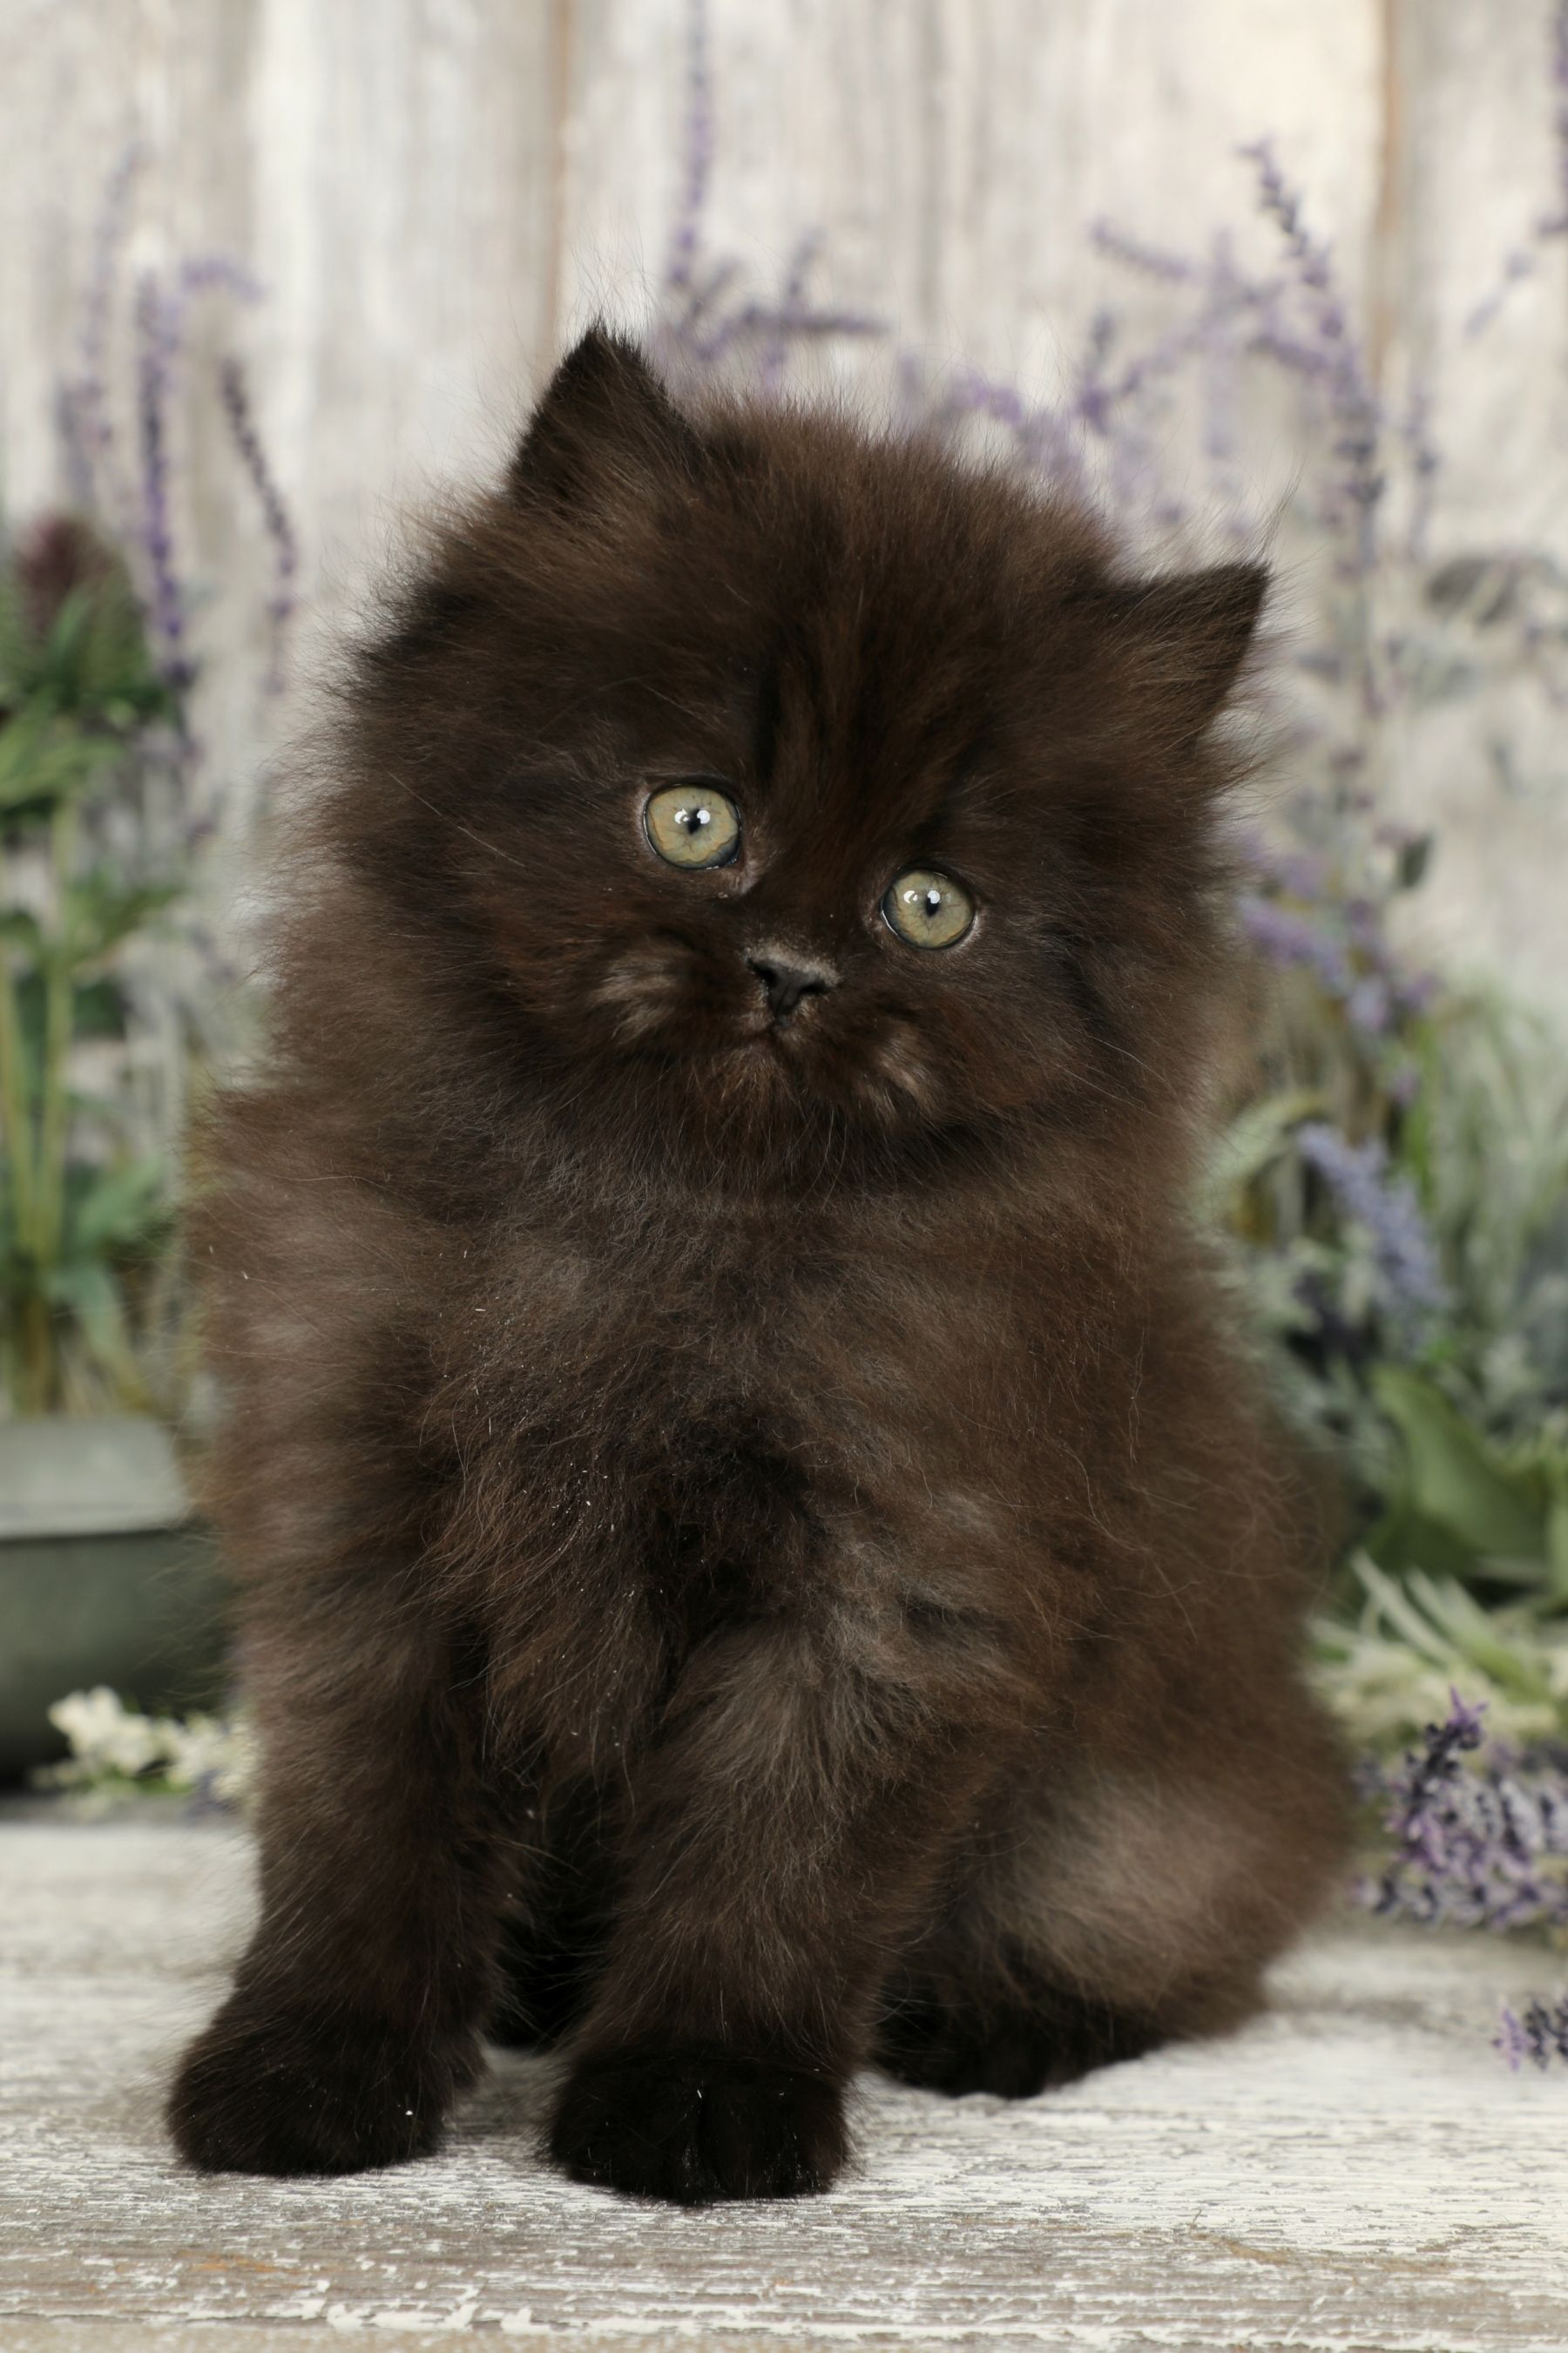 Cute Kittens On Sale Cute Cats And Kittens Doing Funny Things Blackcats Baby Cats Kittens Cutest Cute Cats And Kittens